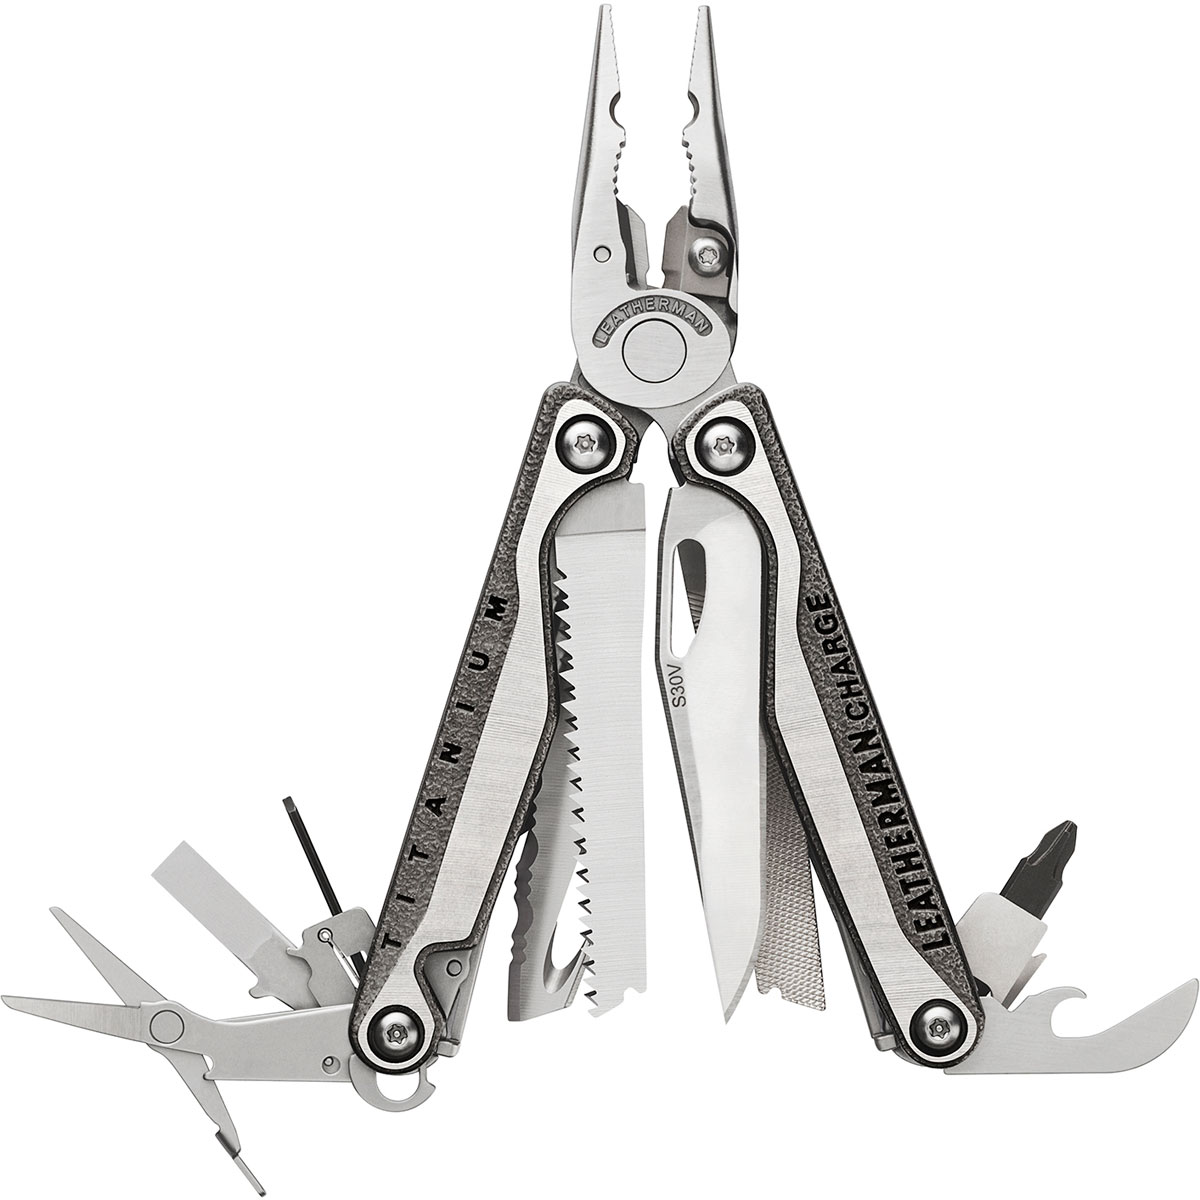 Мультитул Leatherman Charge Plus TTI, цвет: металлик